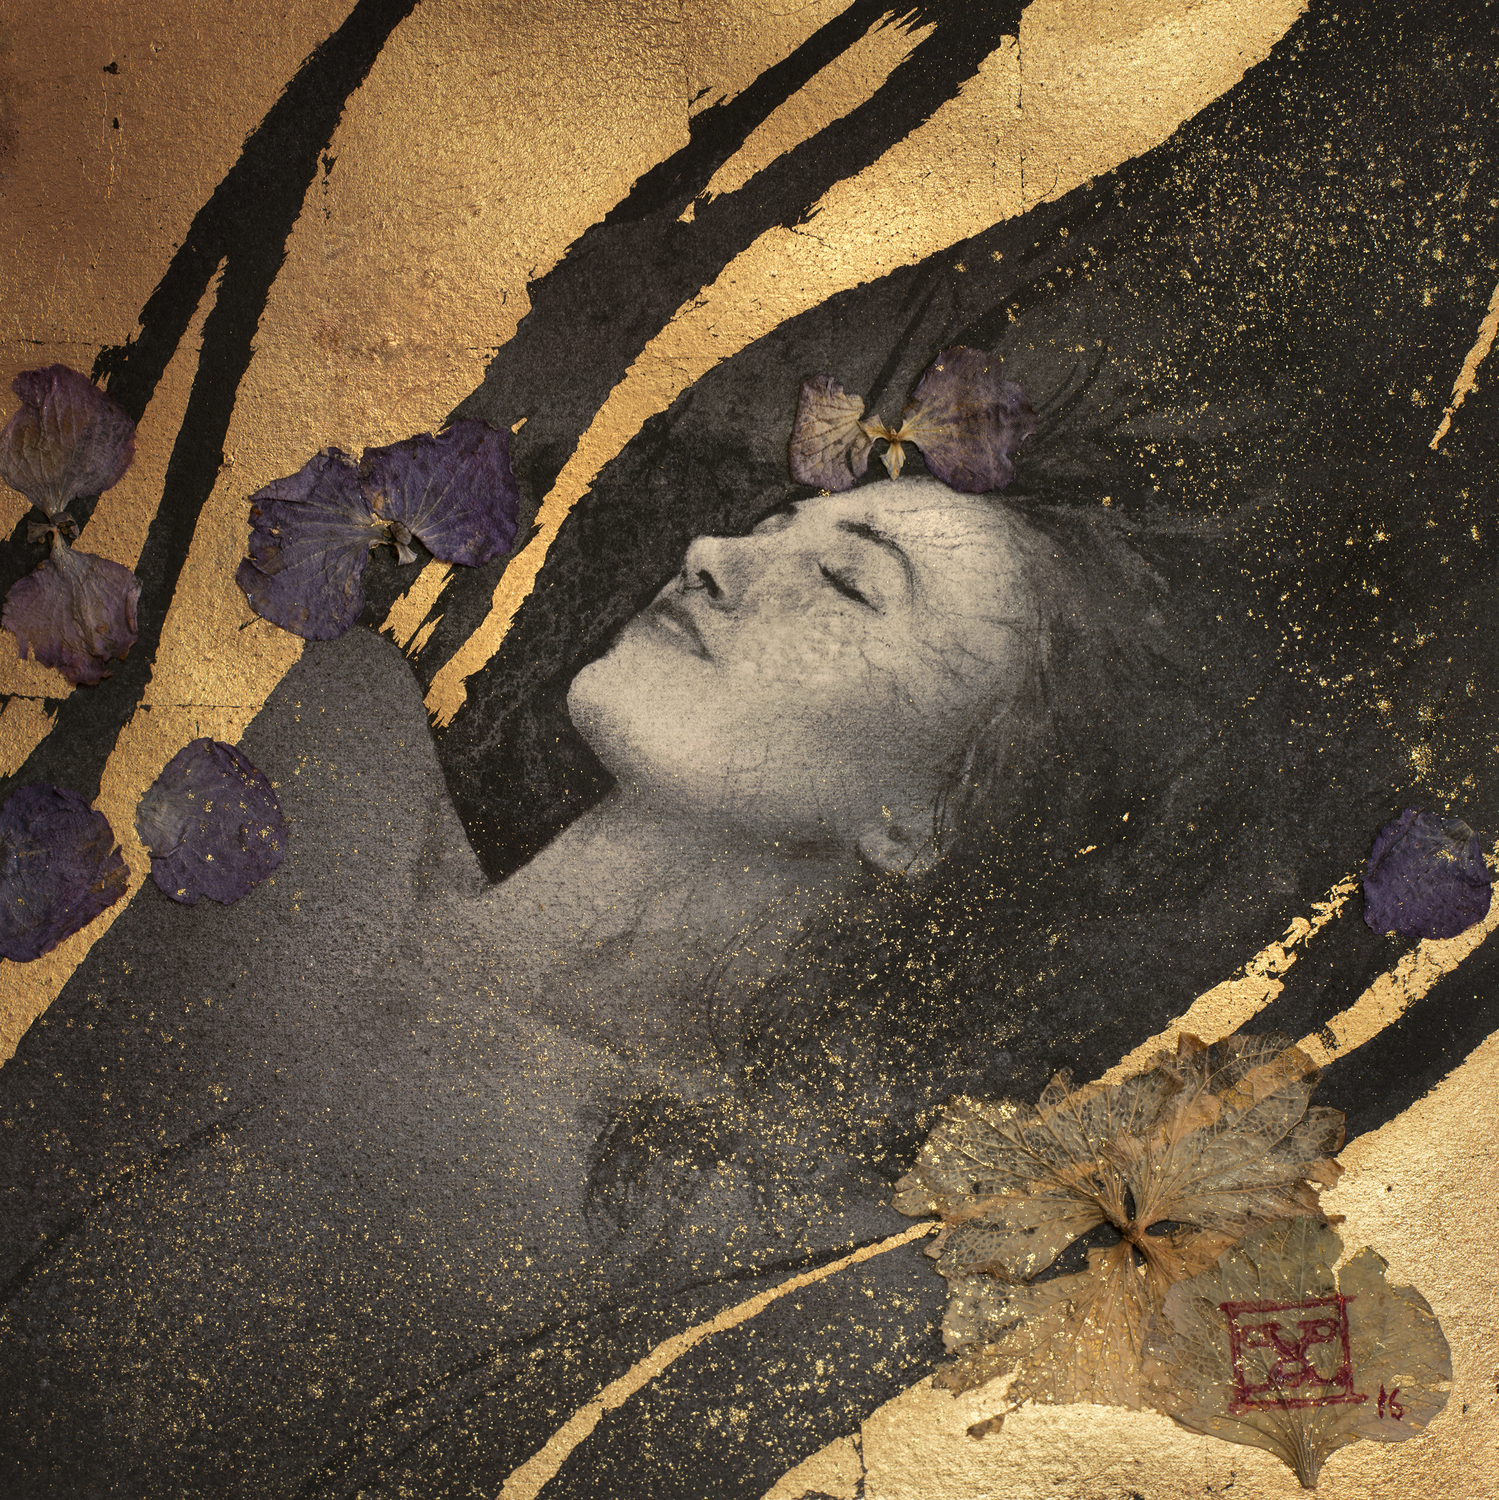 Psyche Artwork by Yoann Lossel